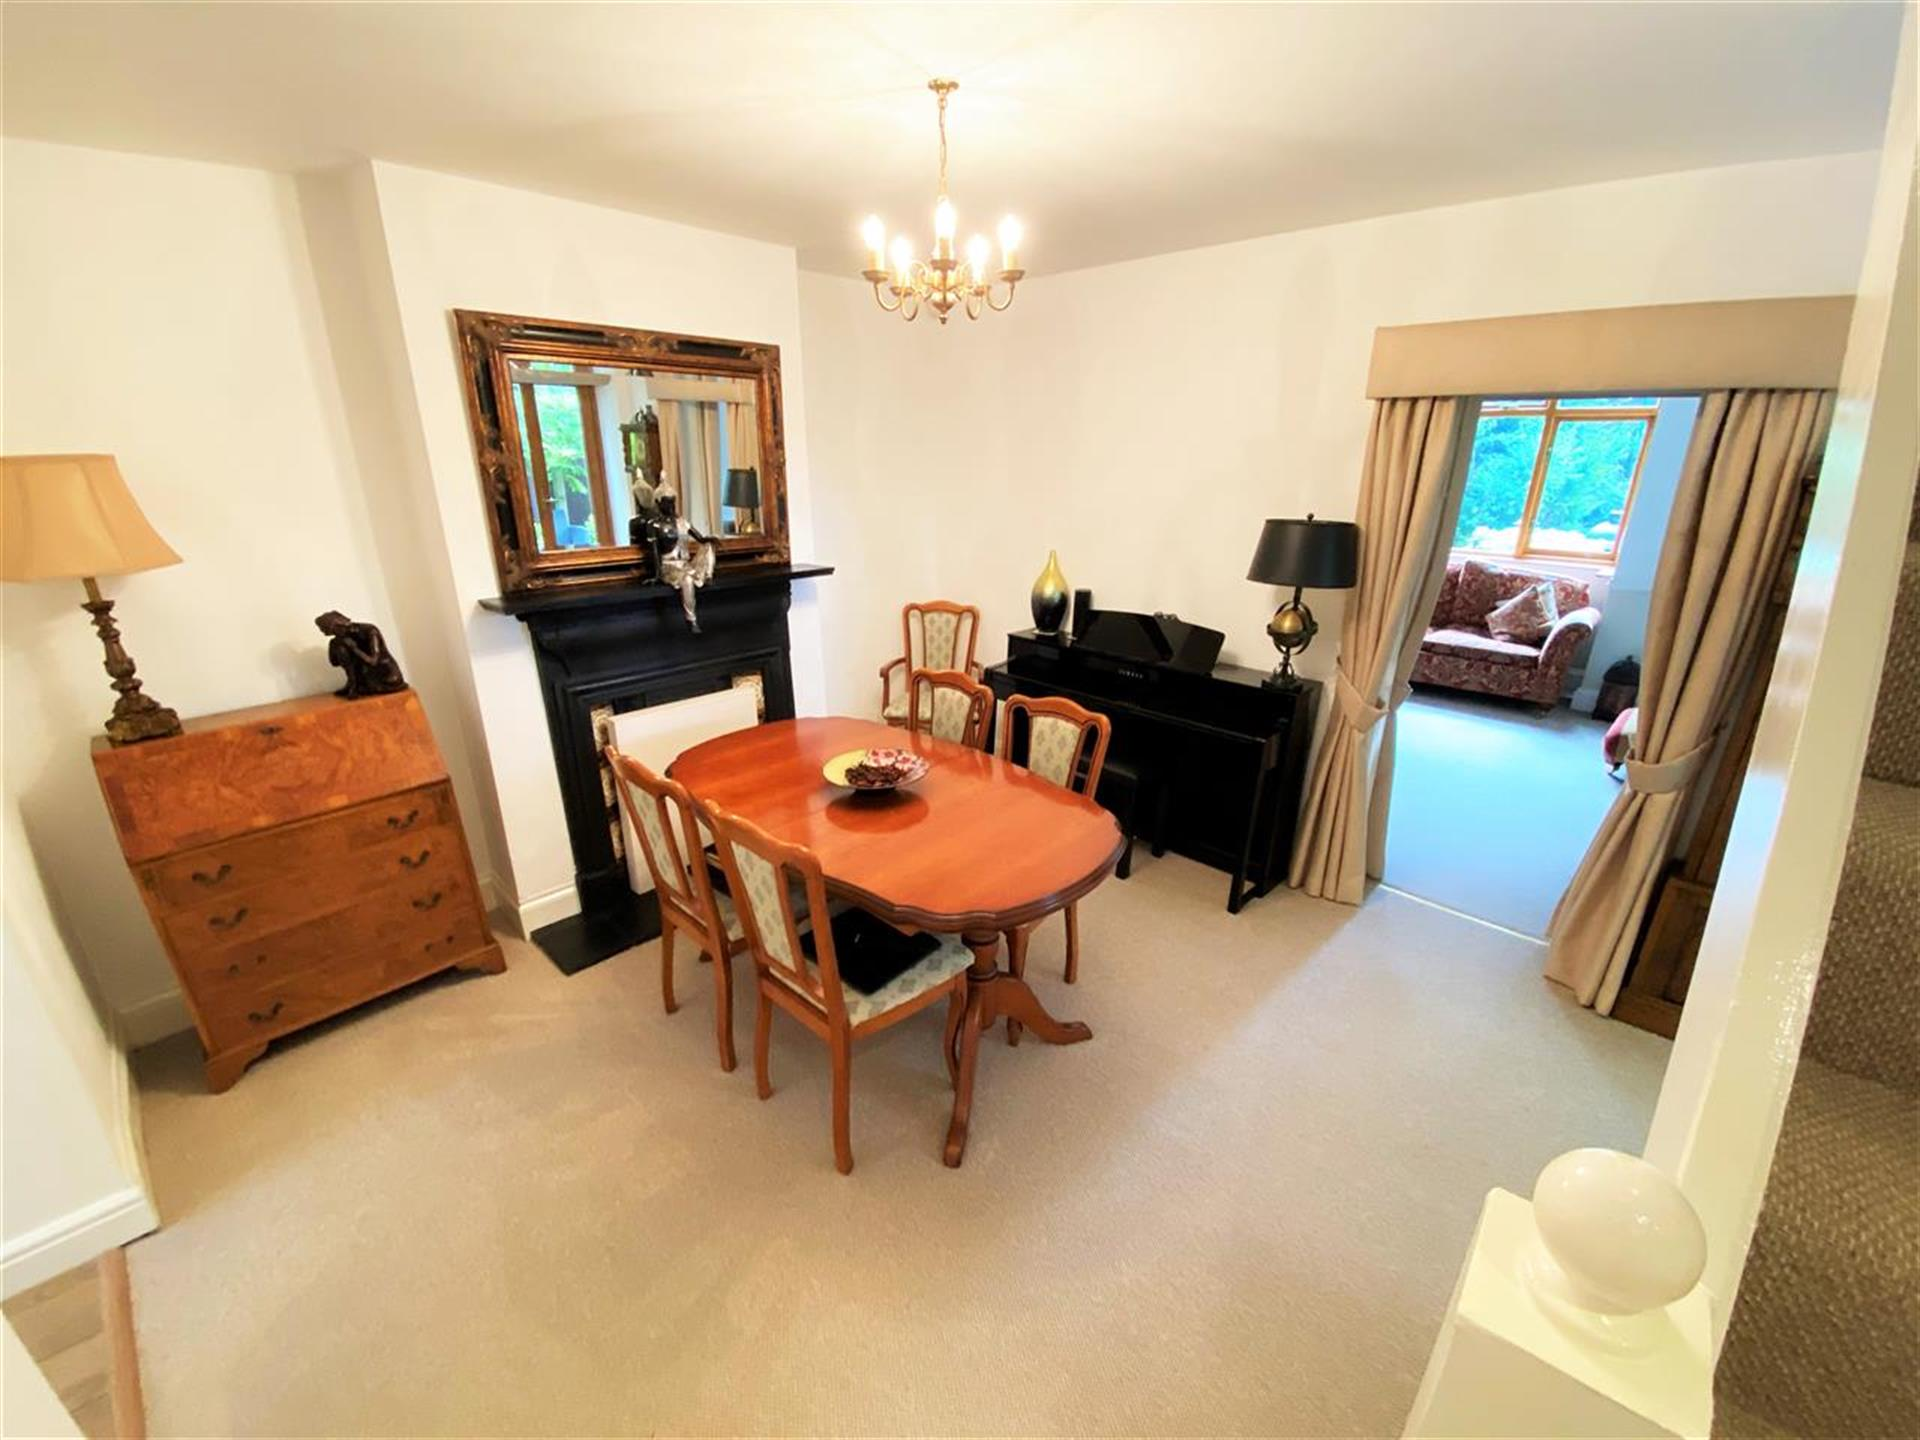 3 Bedroom Semi-detached House For Sale - Recepton Room Two